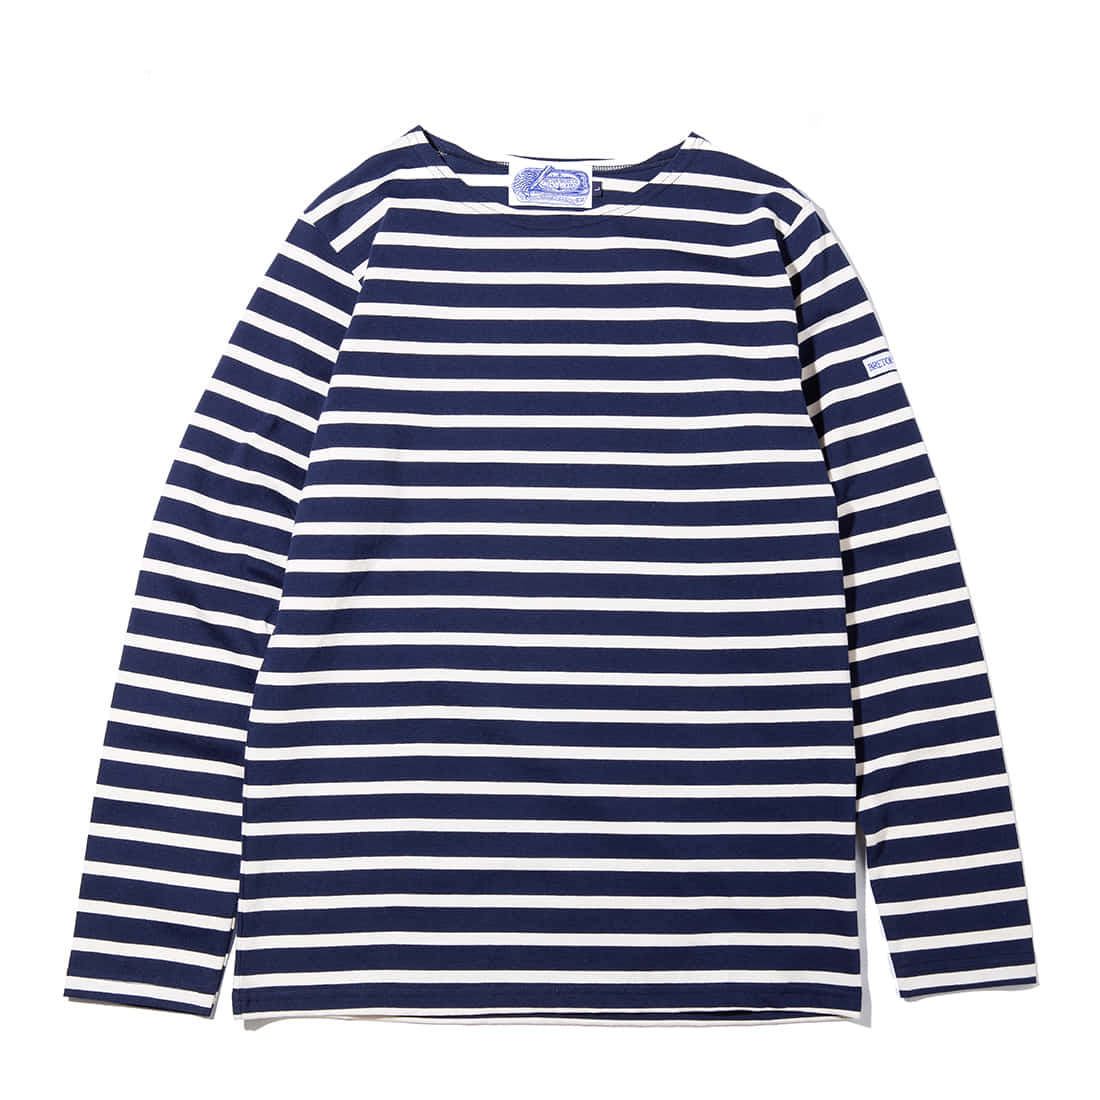 "The Nautique ""NAVY/ECRU CLASSIC BRETON"""